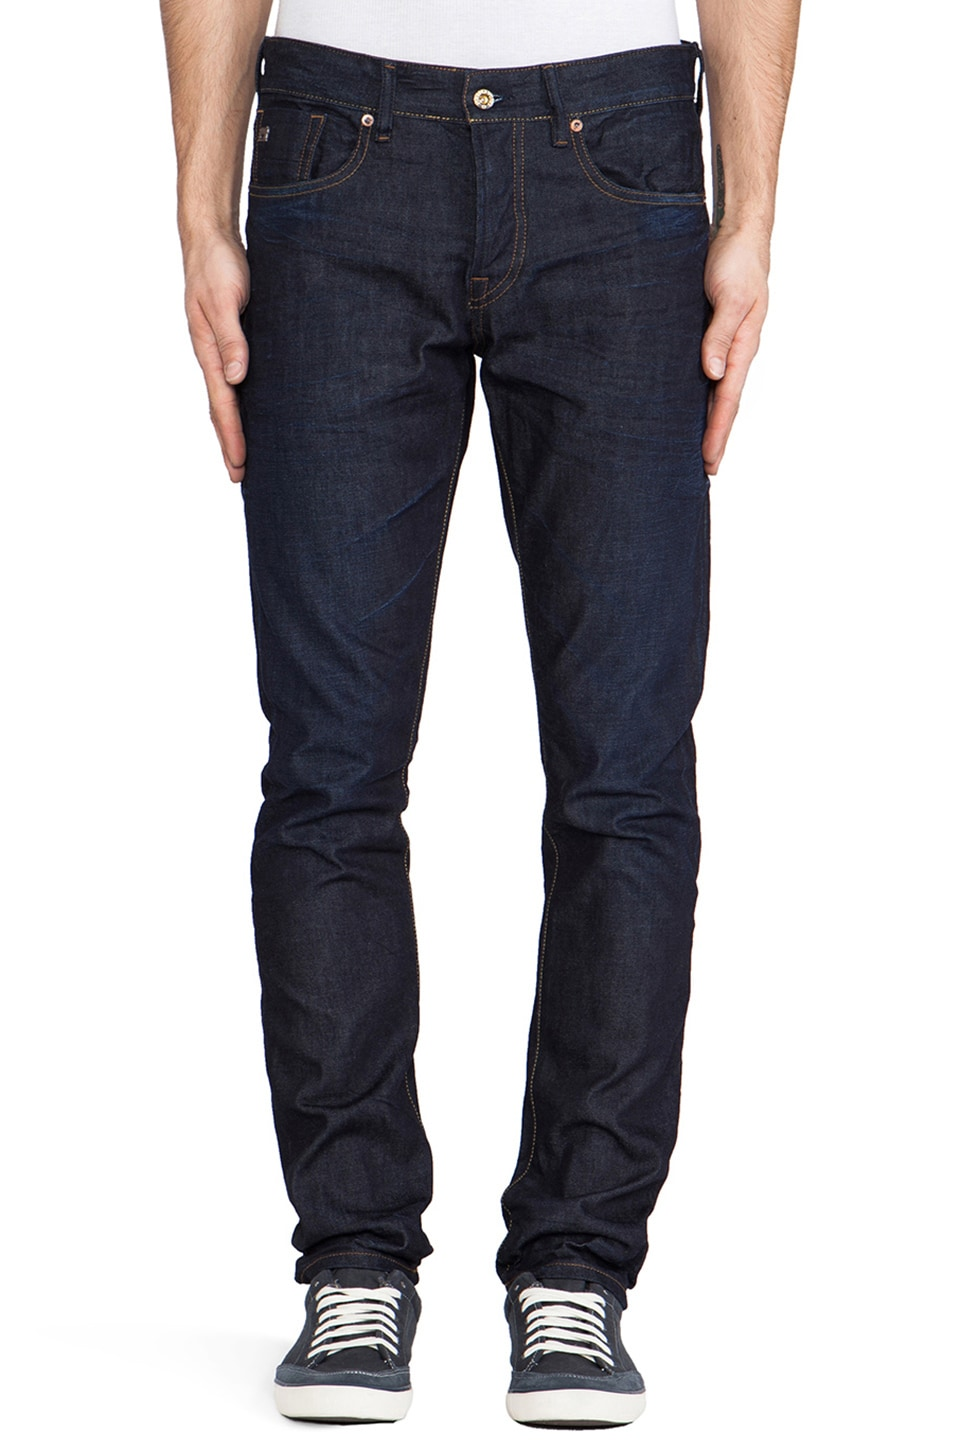 Scotch & Soda Ralston Slim in First Draft